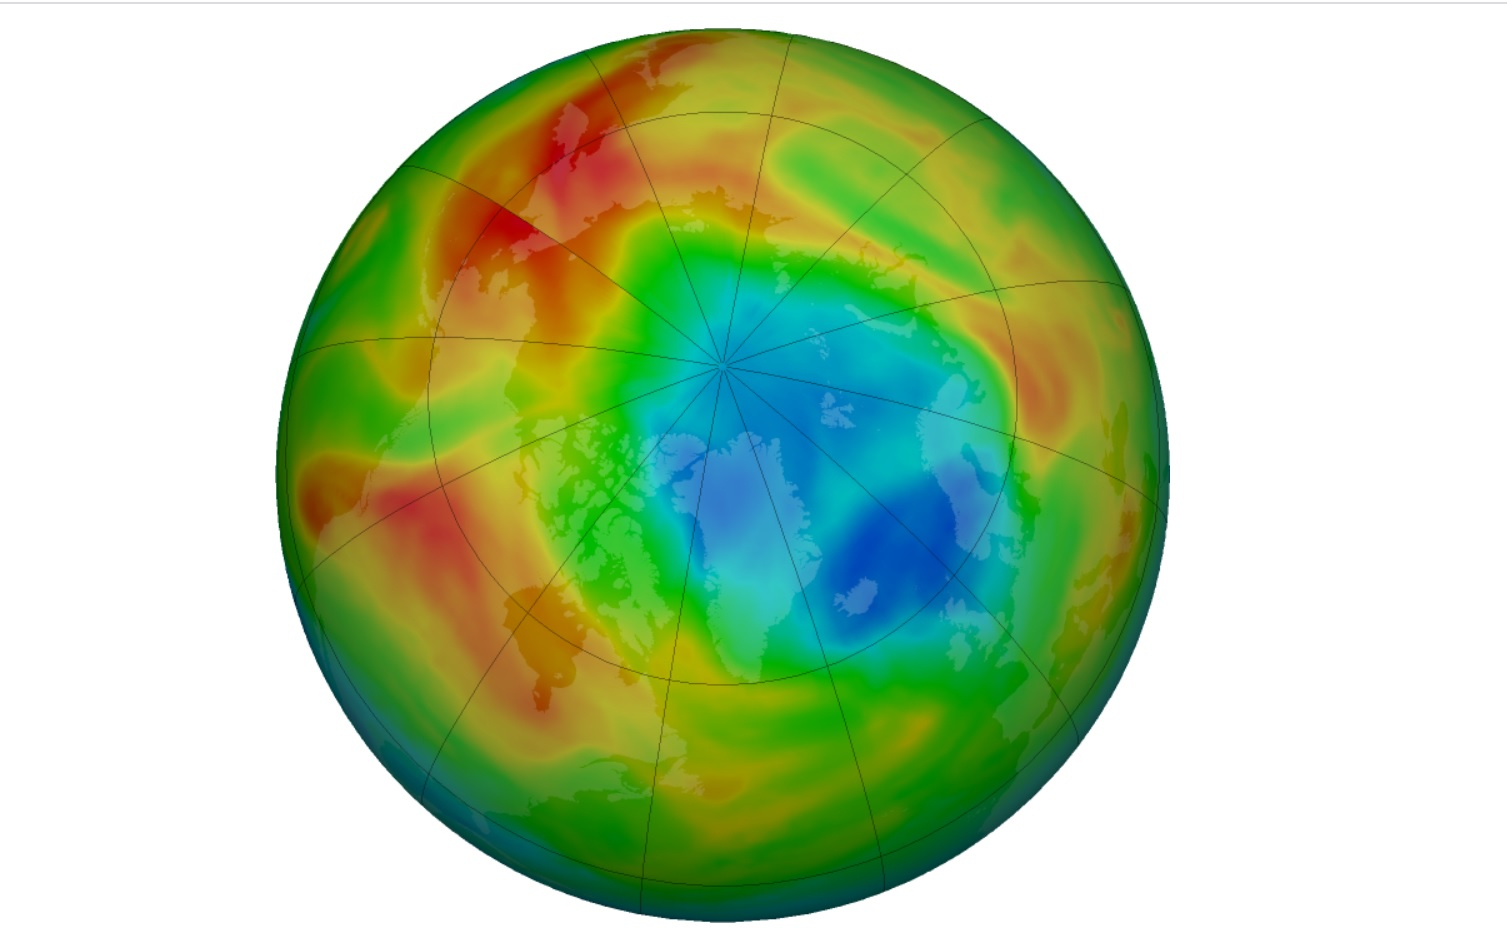 Scientists Observe An Unusual Ozone Hole Over The Arctic